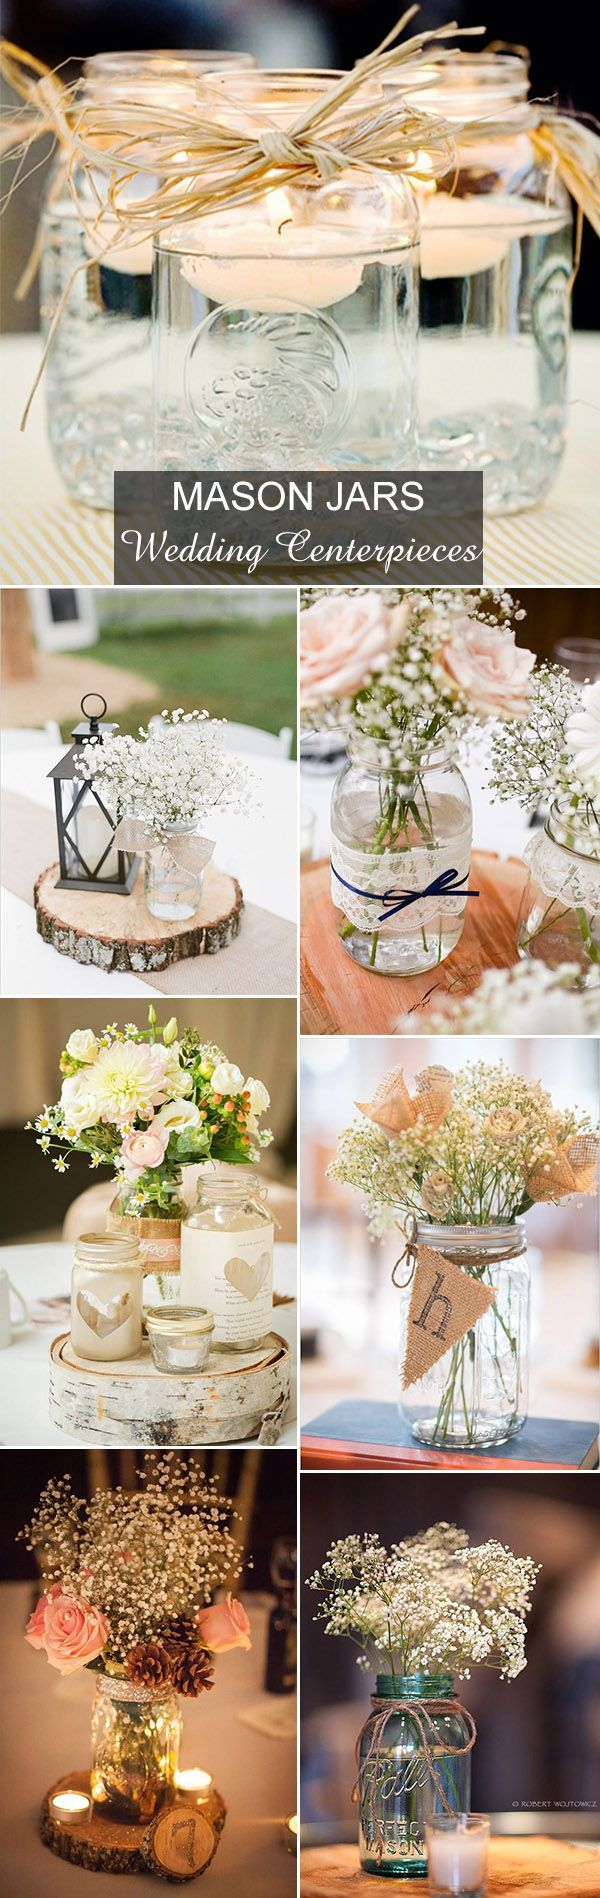 Wedding Designs Ideas best 20 wedding ceremony decorations ideas on pinterest wedding aisle decorations wedding ceremony and receptions and rustic wedding ceremonies Country Rustic Mason Jars Inspired Wedding Centerpieces Ideas